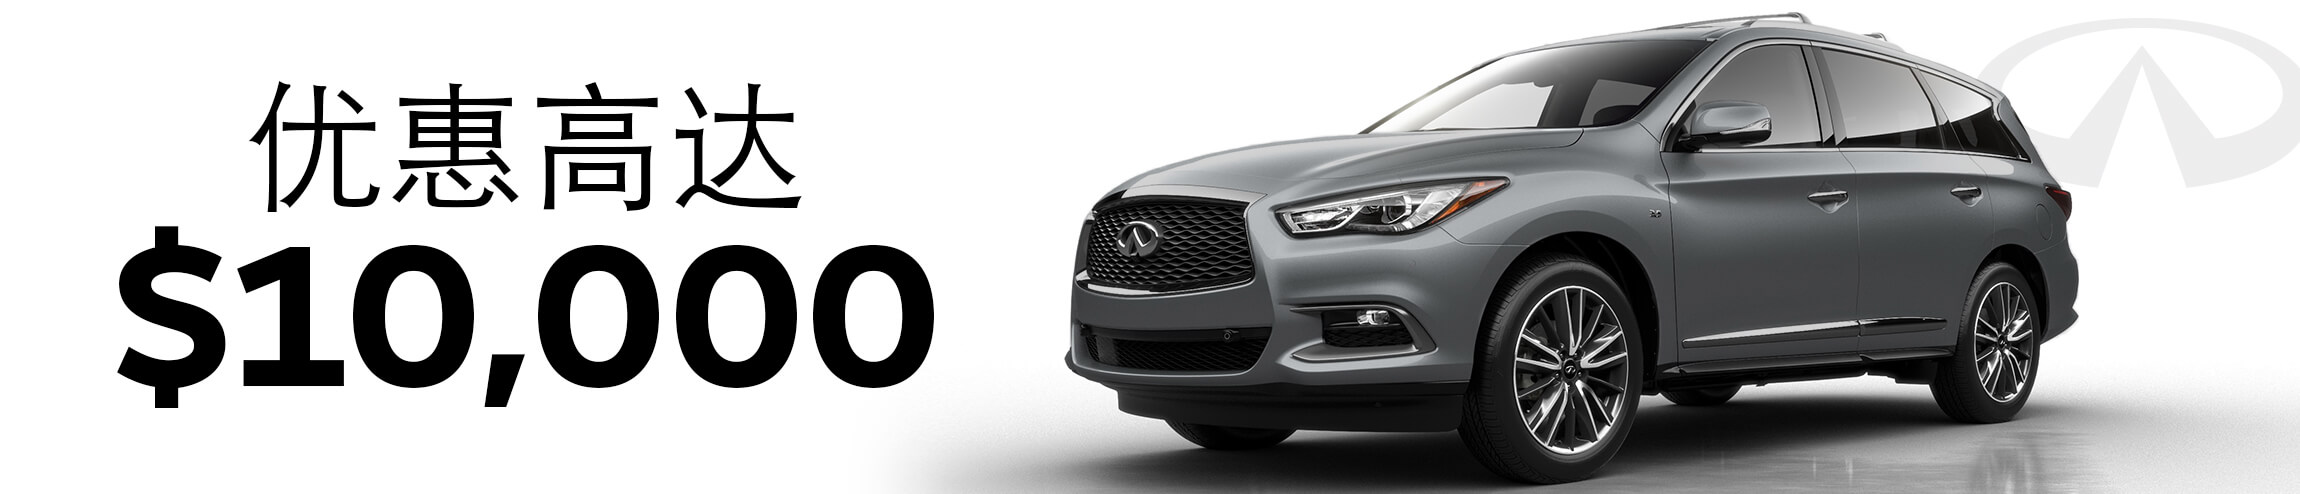 2019 April QX60 Campaign (Chinese)